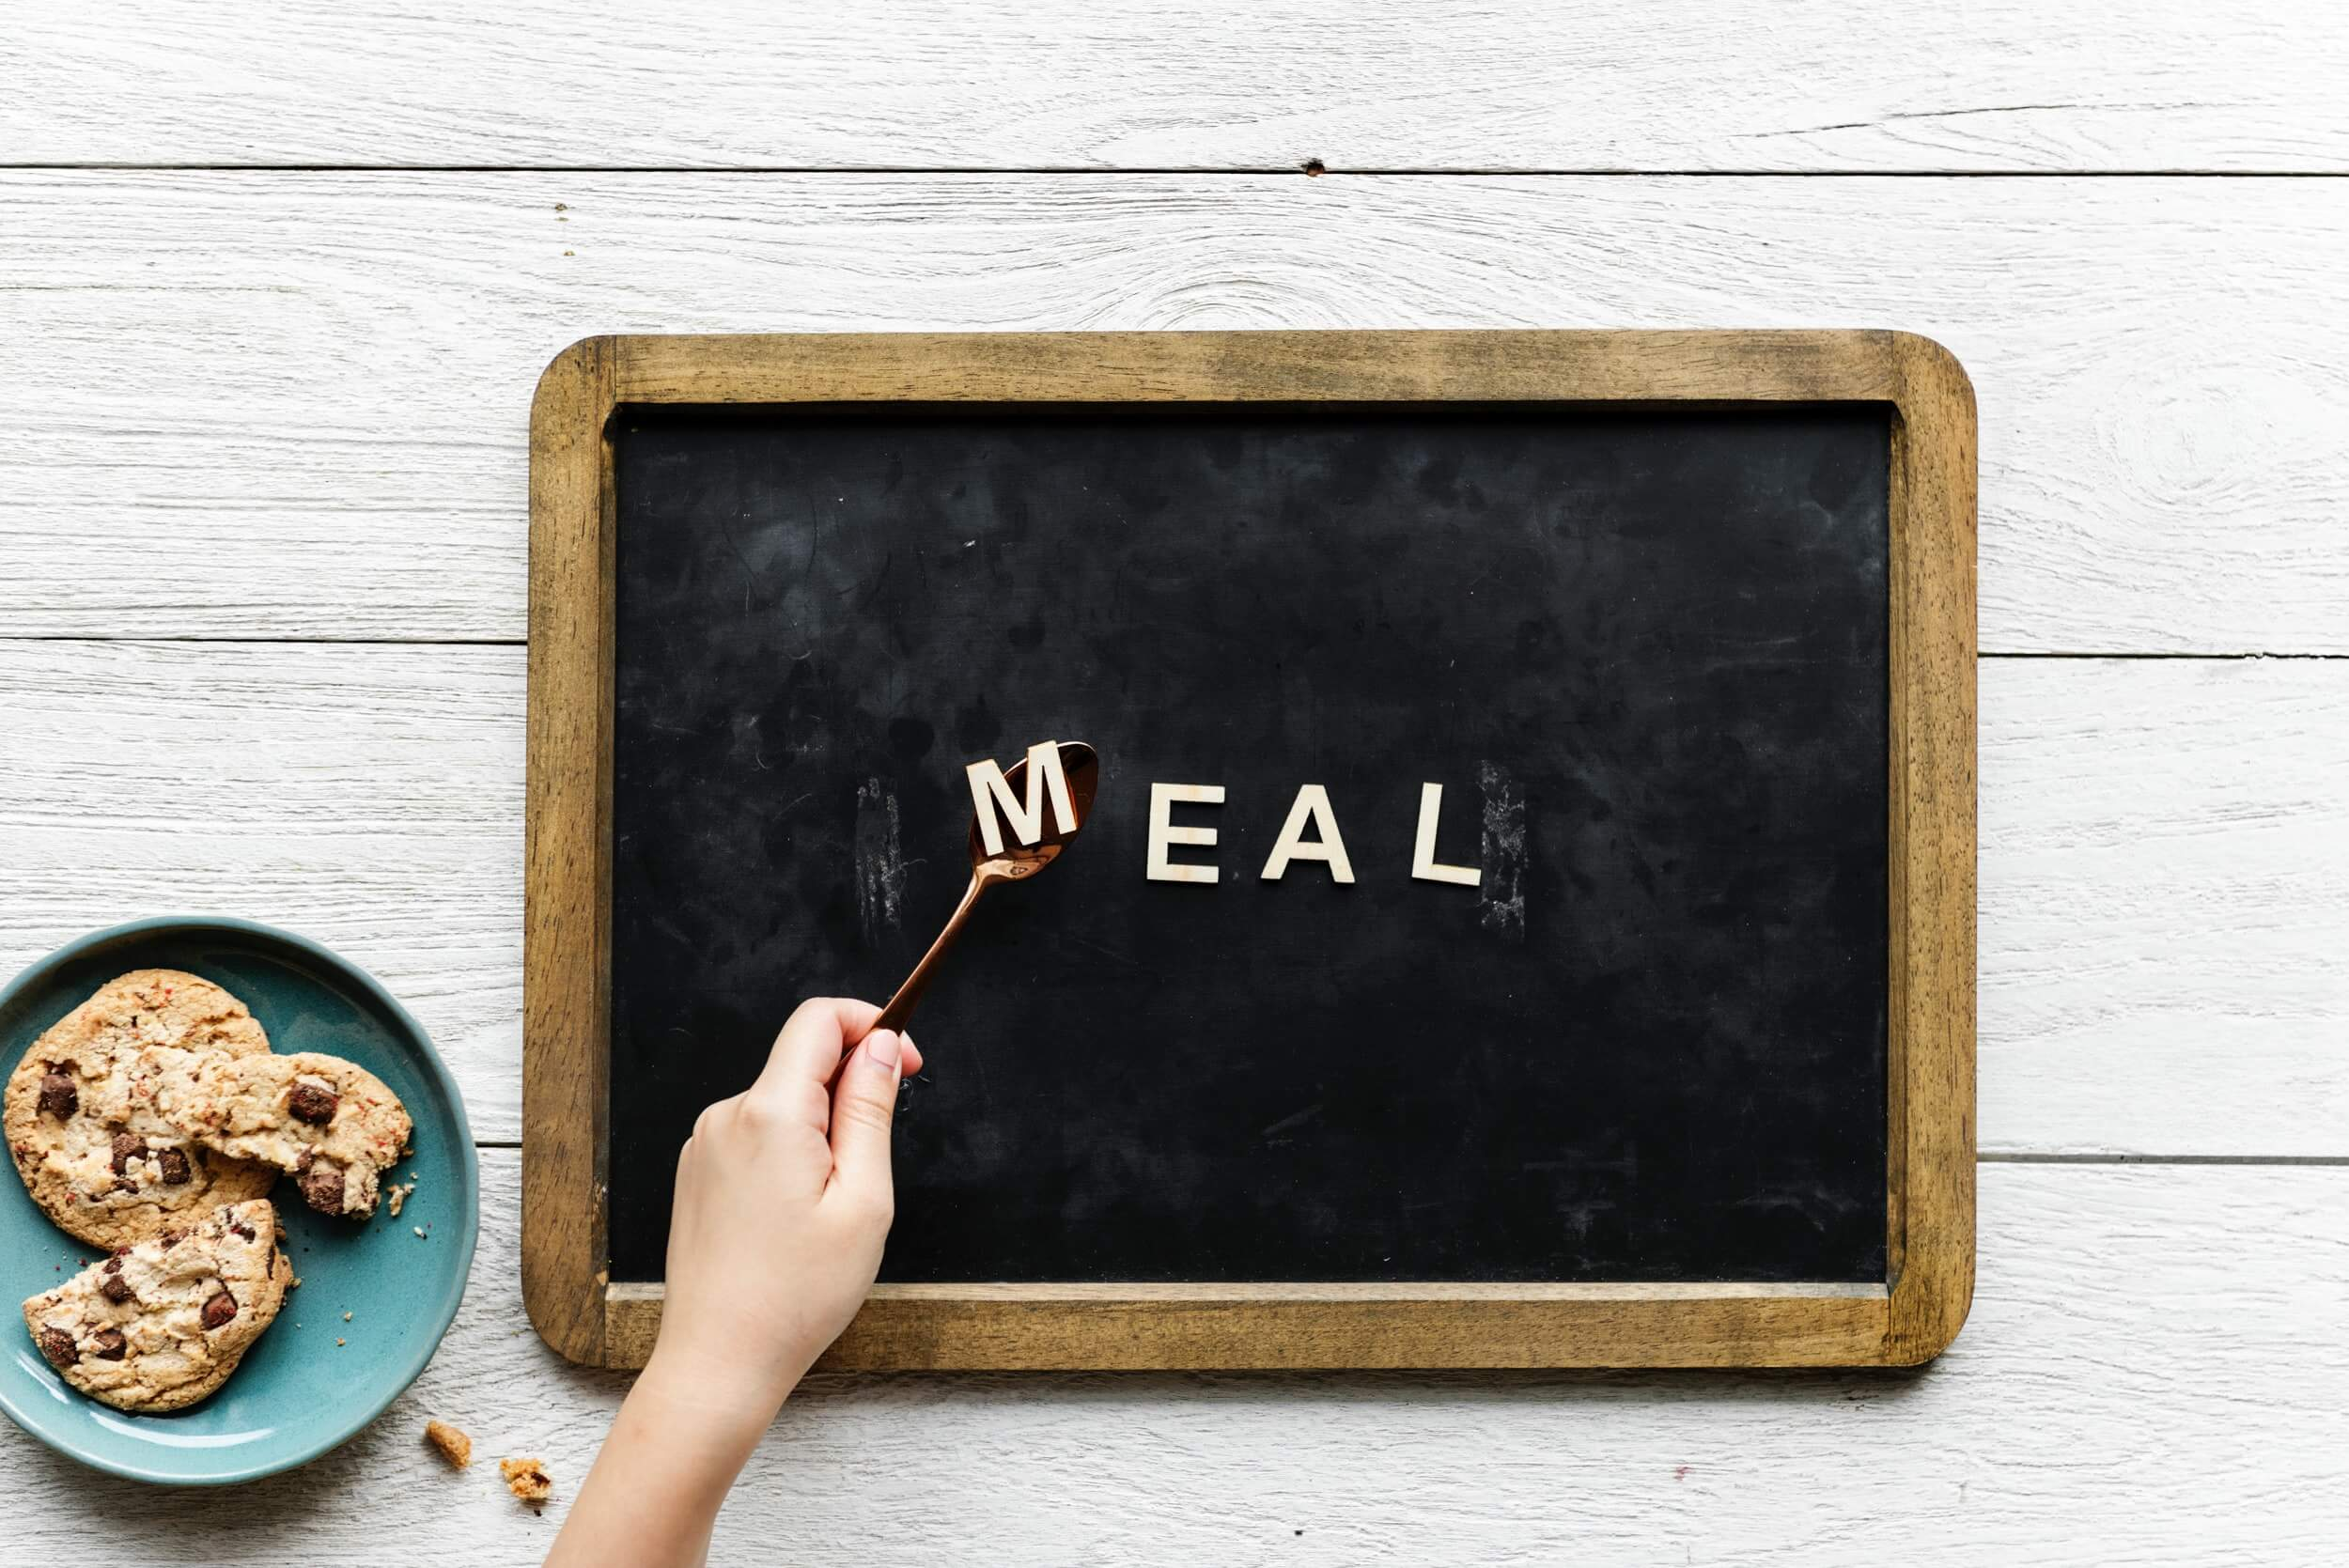 Different Hotel meal plans